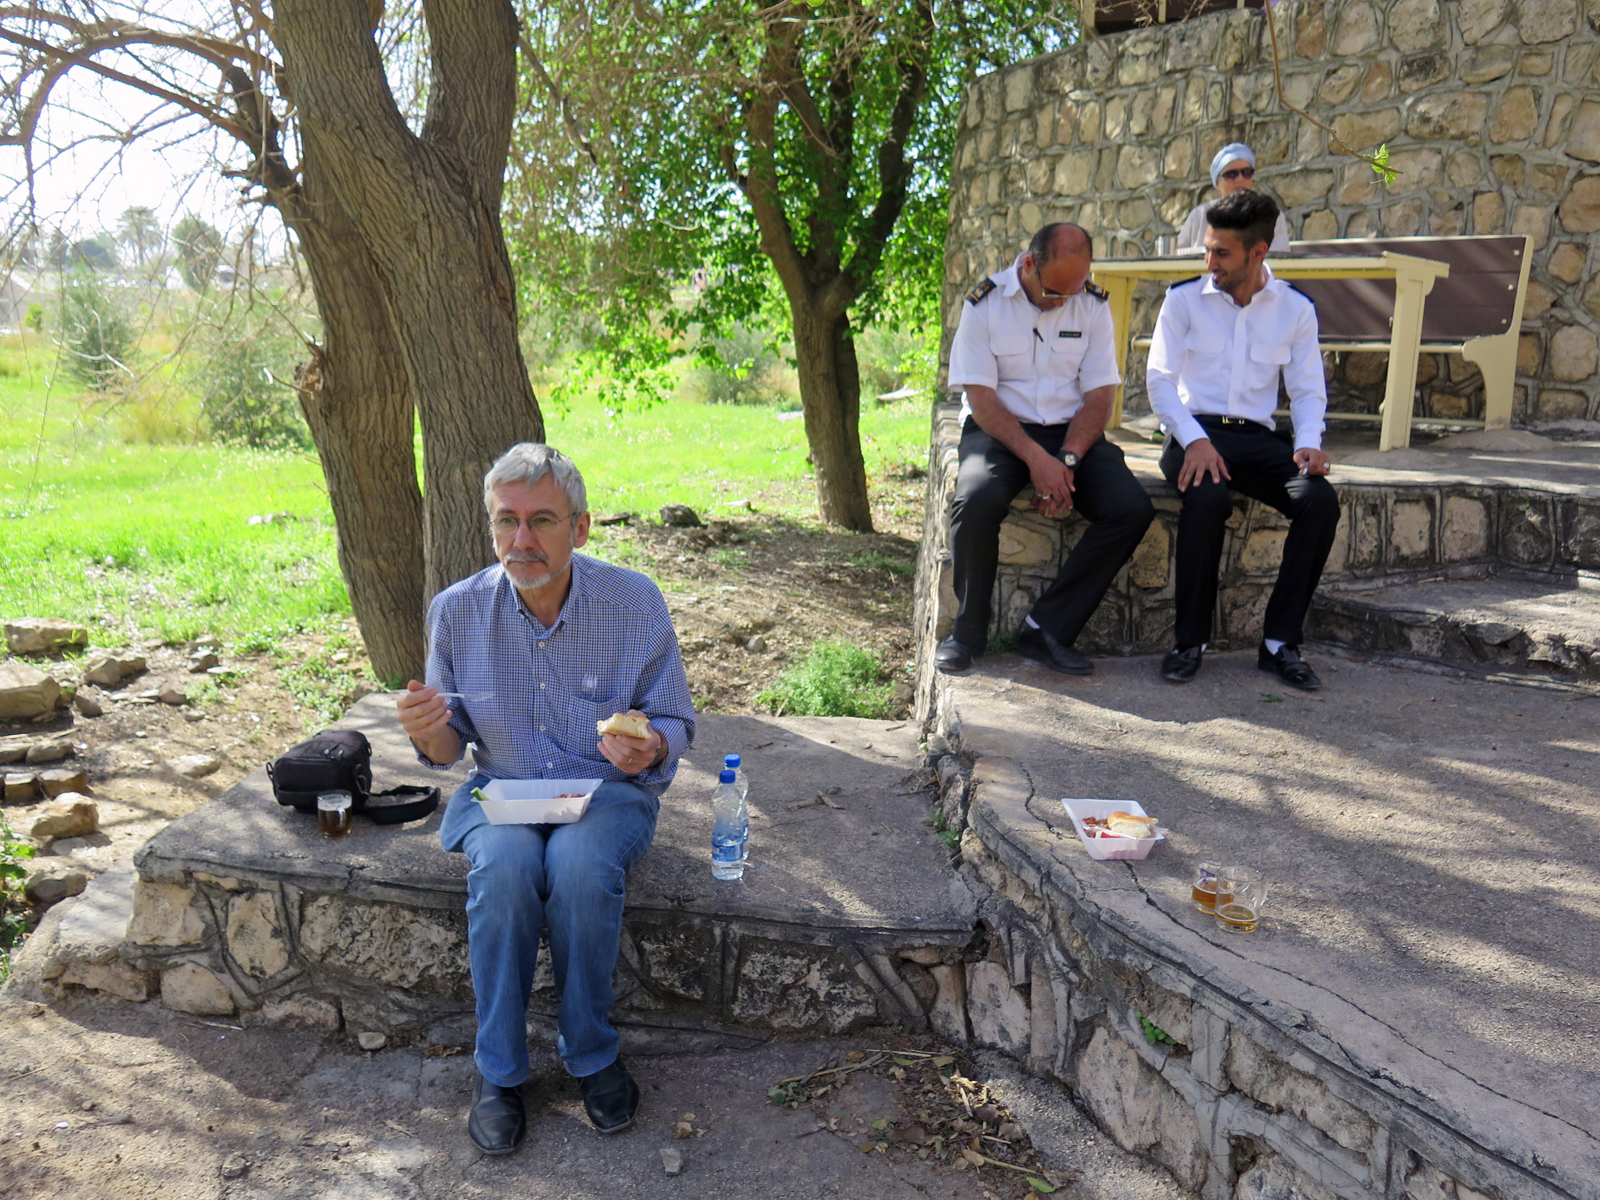 Picknick in Bishapur - Iran